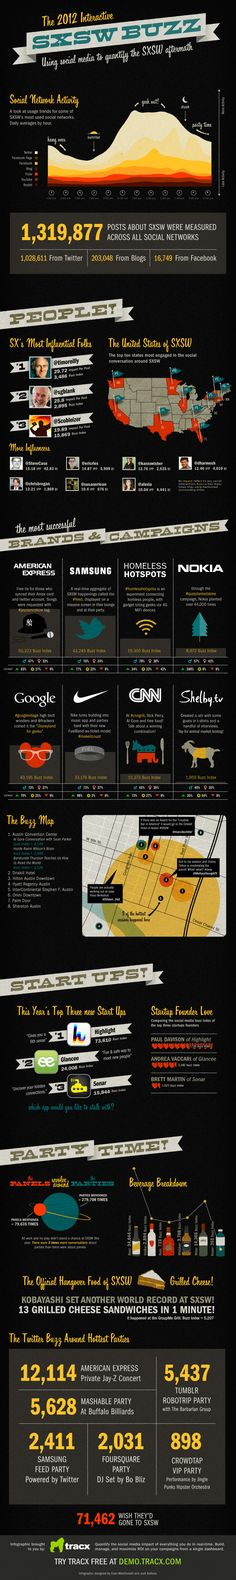 94 best infographics images info graphics, internet marketing2012 interactive sxsw buzz using social media to quantify the sxsw aftermath